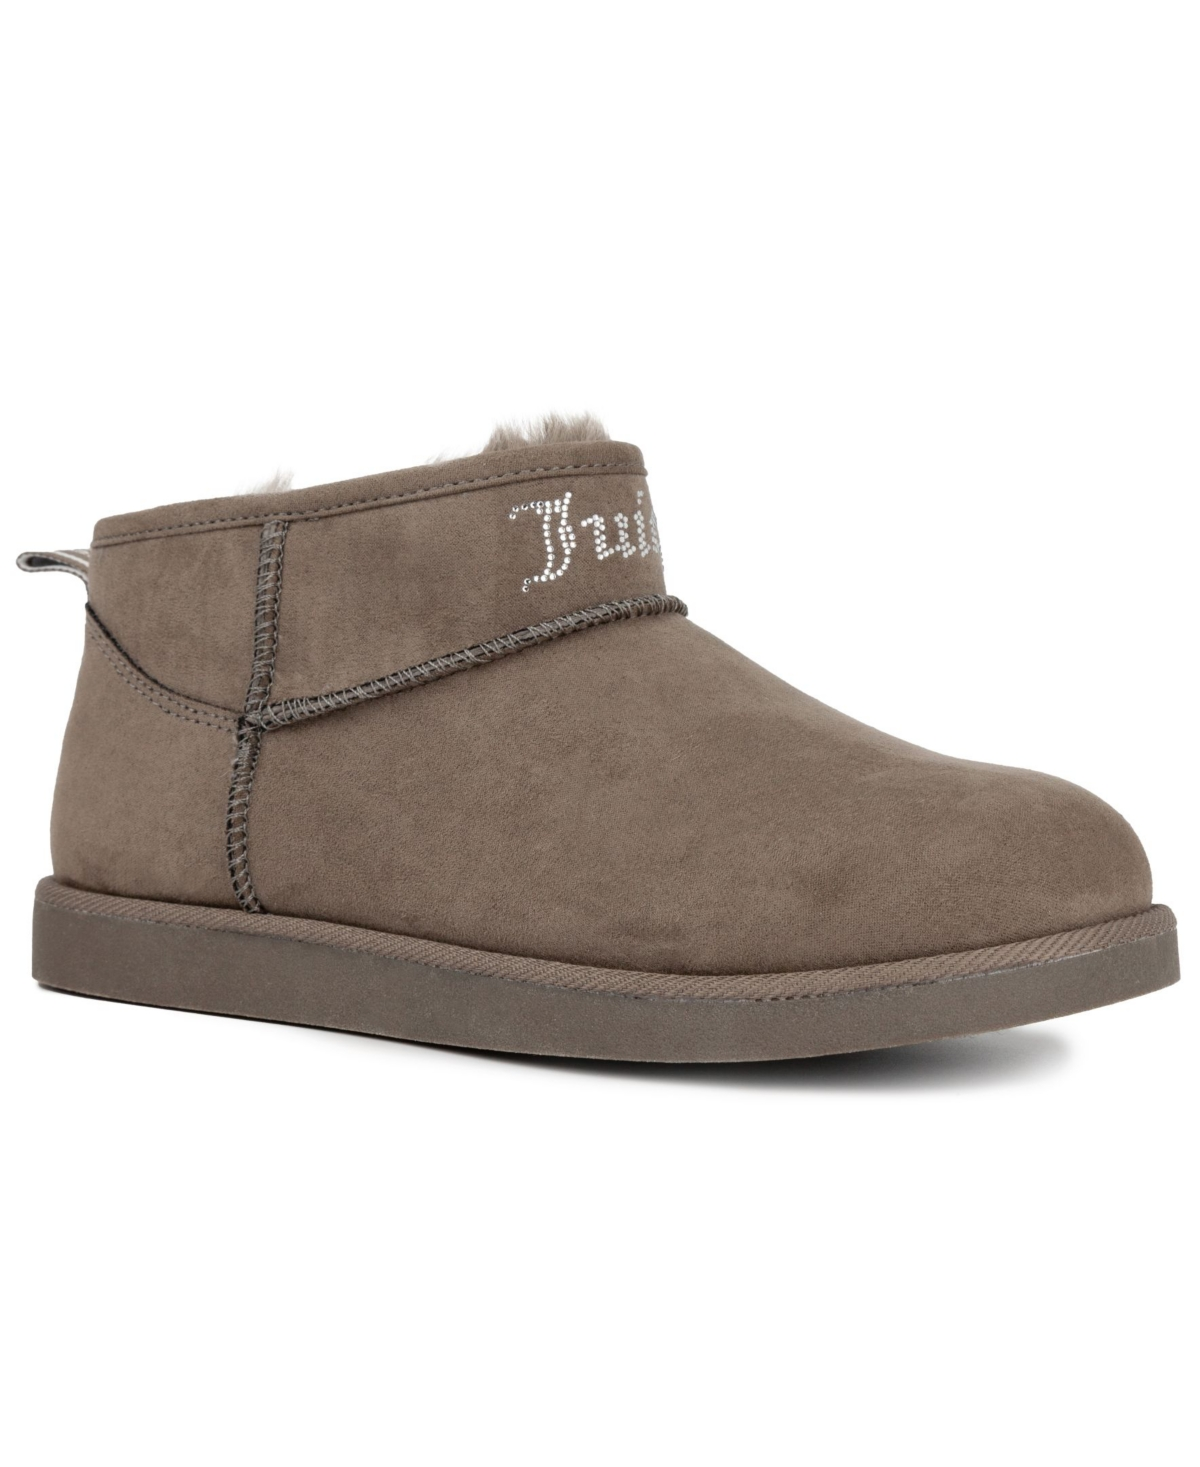 Juicy Couture Women's Kerri Cold Weather Ankle Boots Women's Shoes